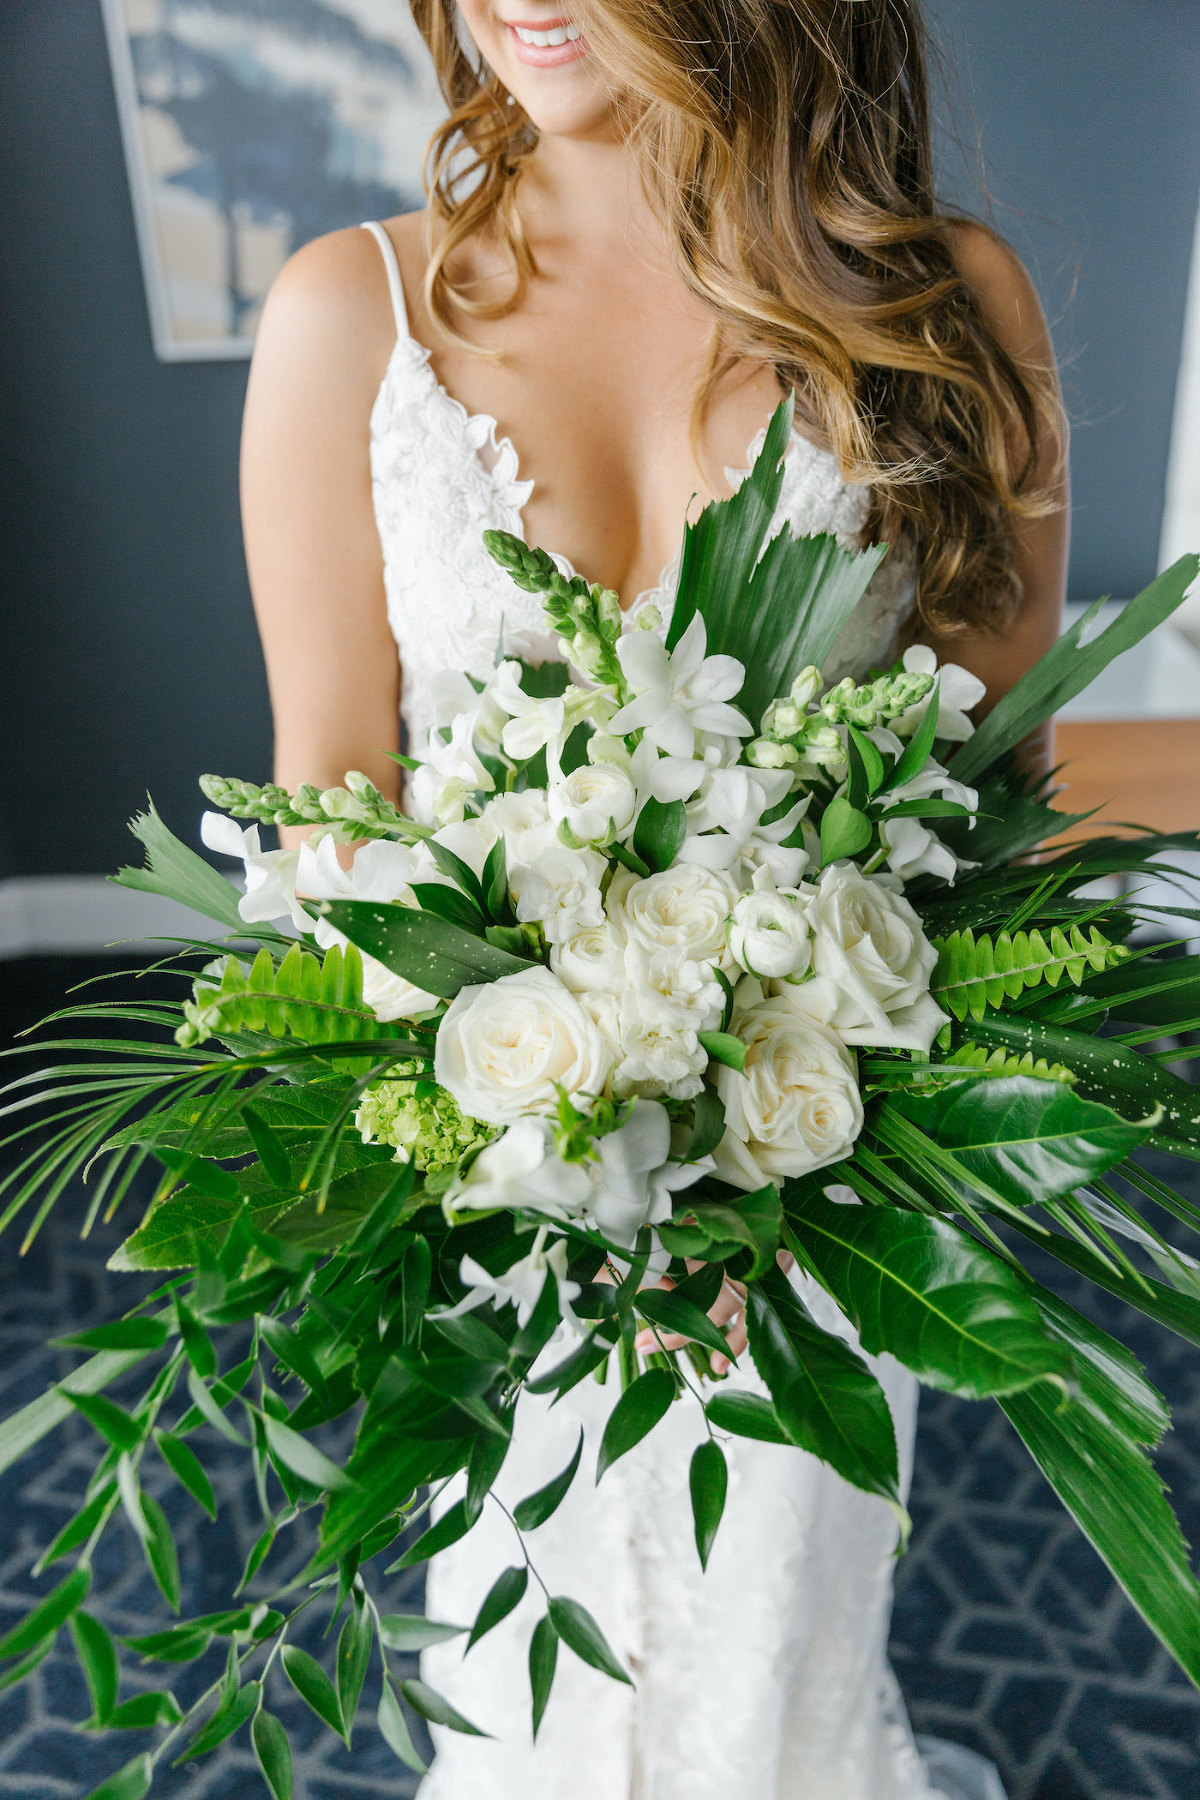 Tampa Wedding Florist Bruce Wayne Florals | Florida Tropical Wedding Bridal Bouquet with Greenery Palm Fronds and Ferns and White Roses Orchids and Snapdragons